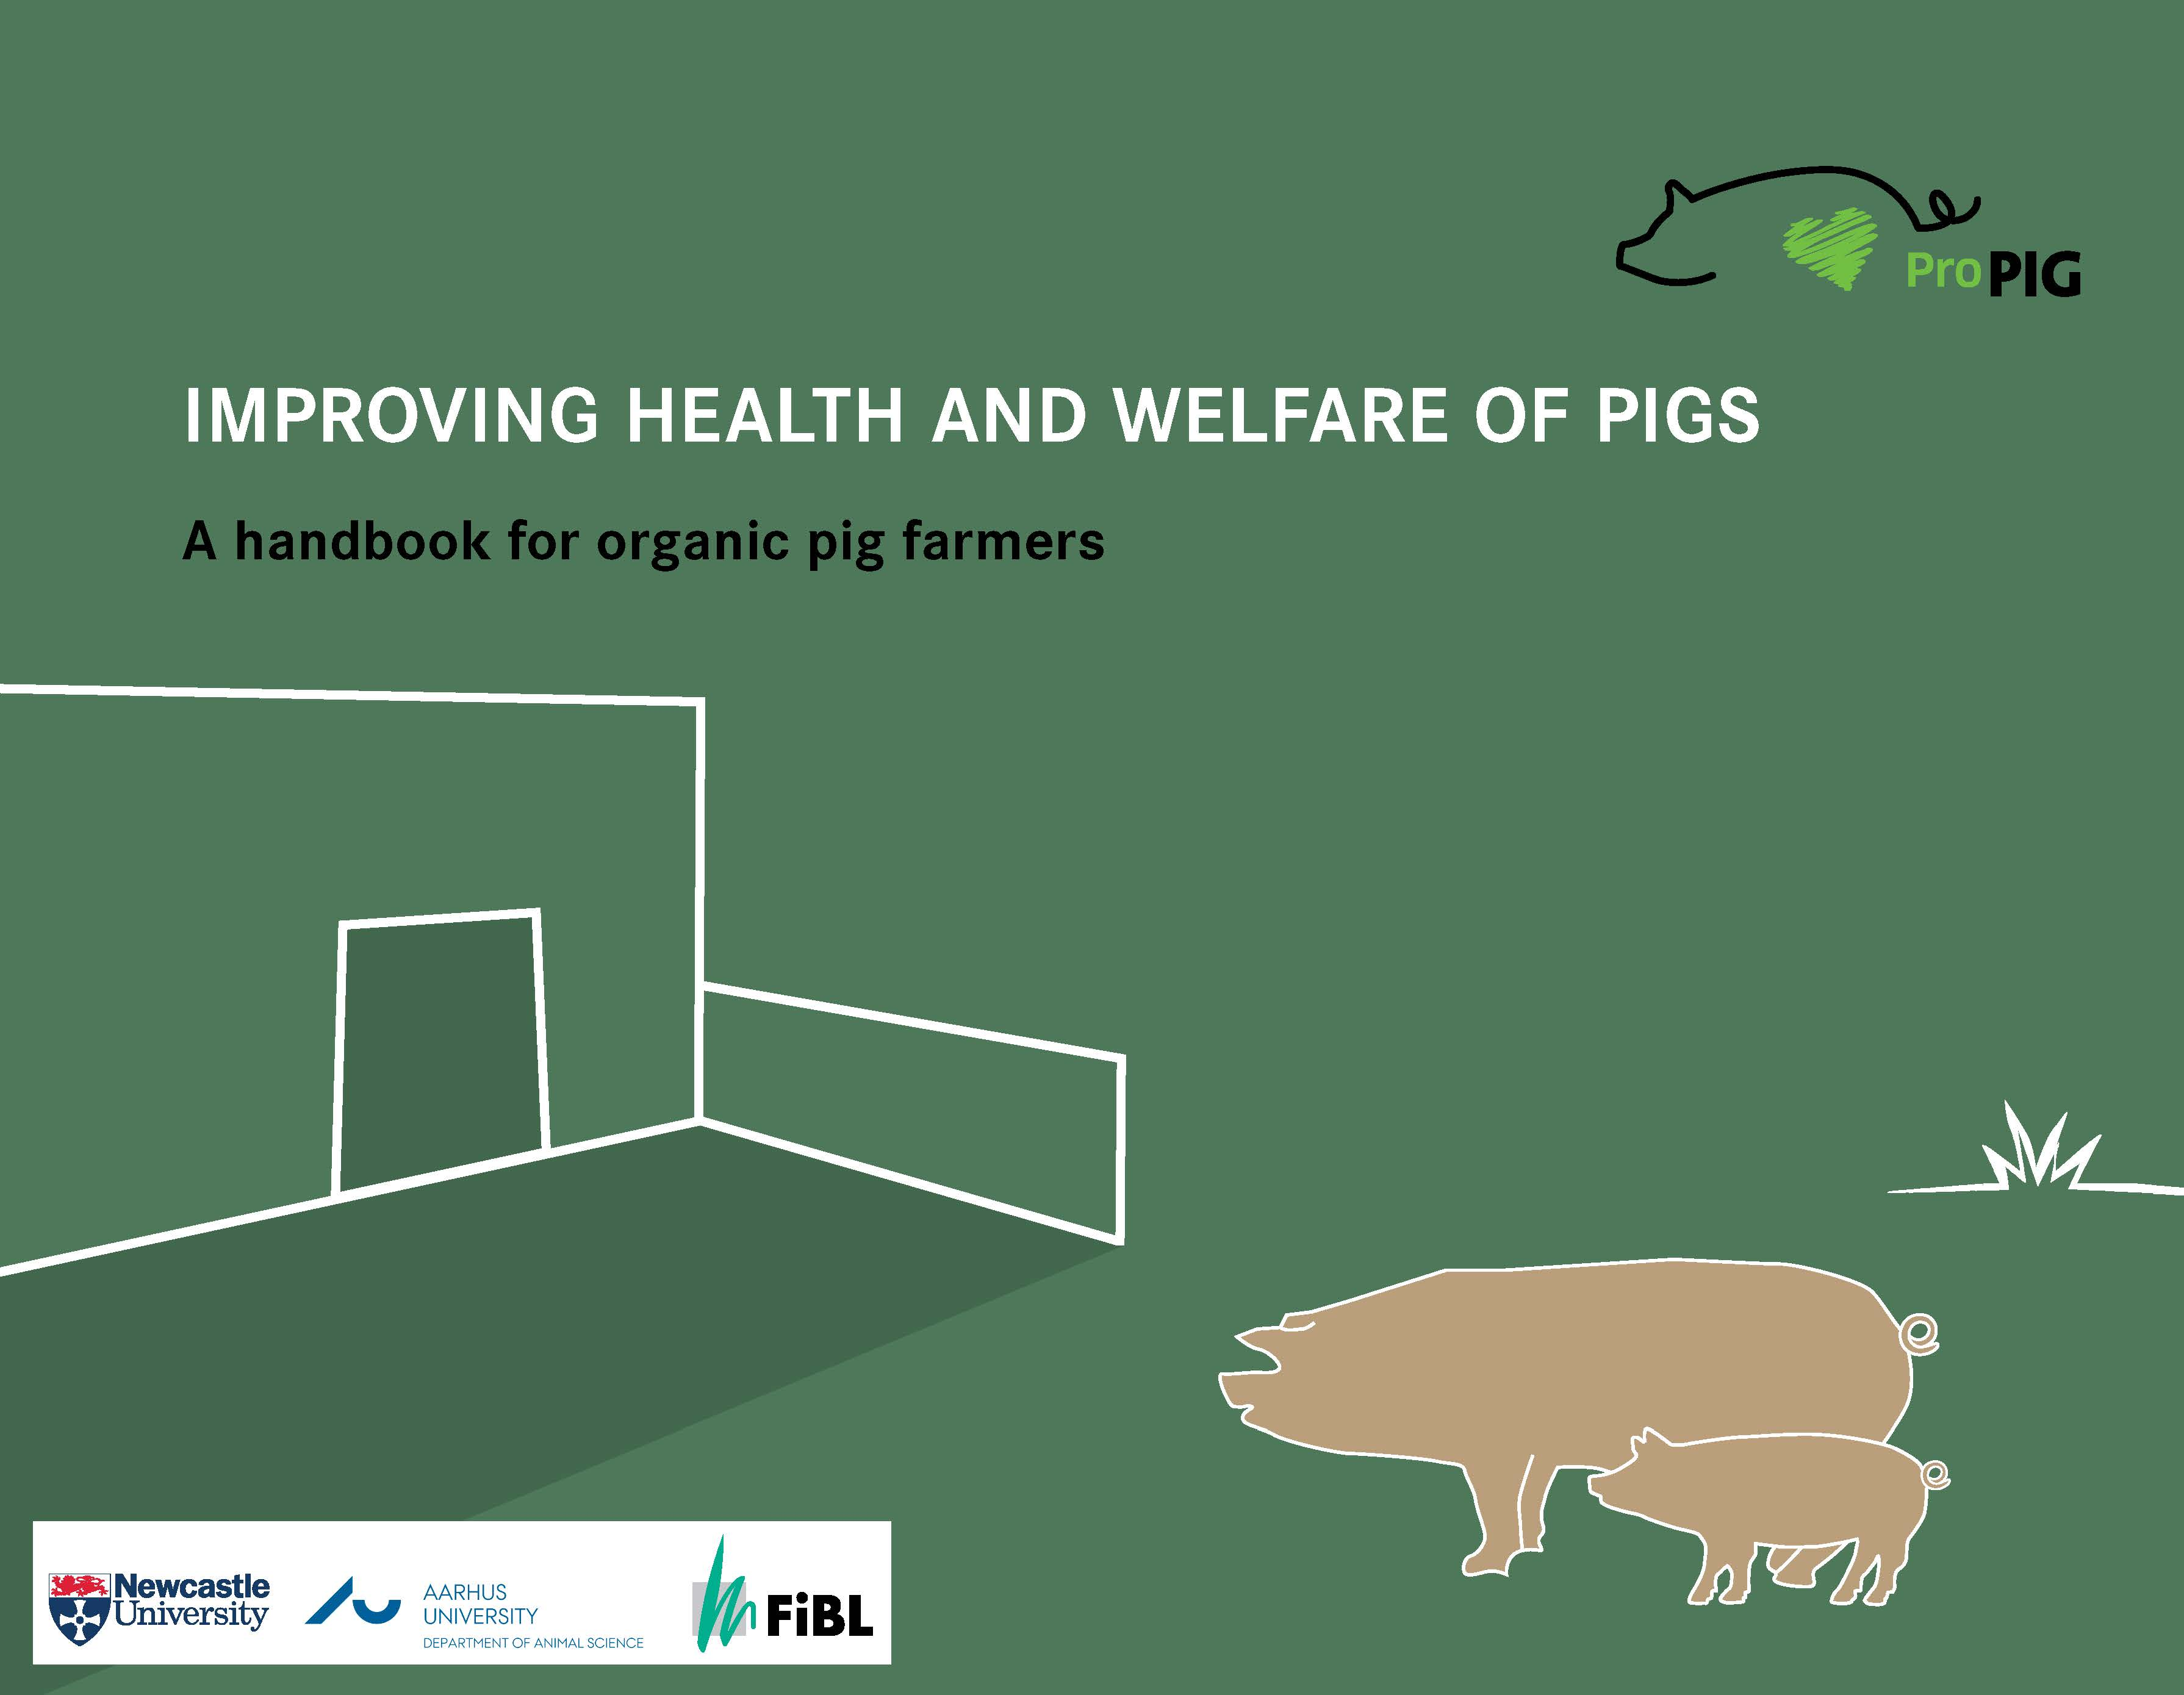 Improving health and welfare of pigs - A handbook for organic pig farmers